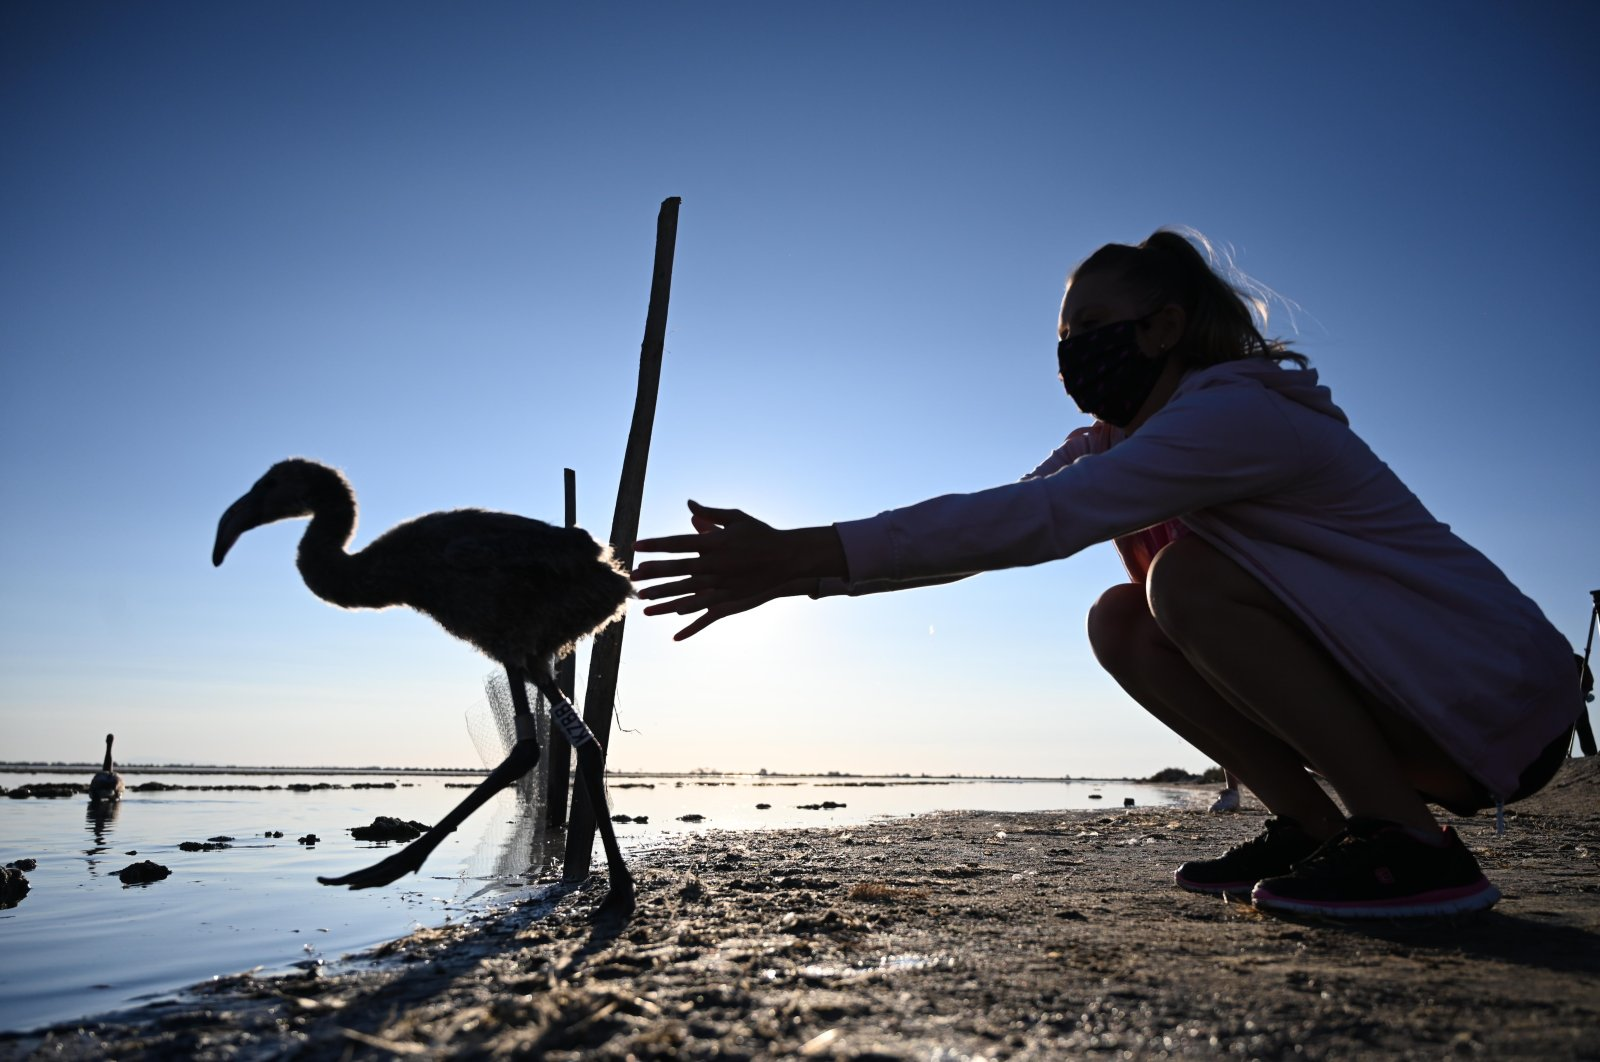 A volunteer releases a flamingo chick in Aigues-Mortes, near Montpellier, southern France, on Aug. 5, 2020. (AFP Photo)